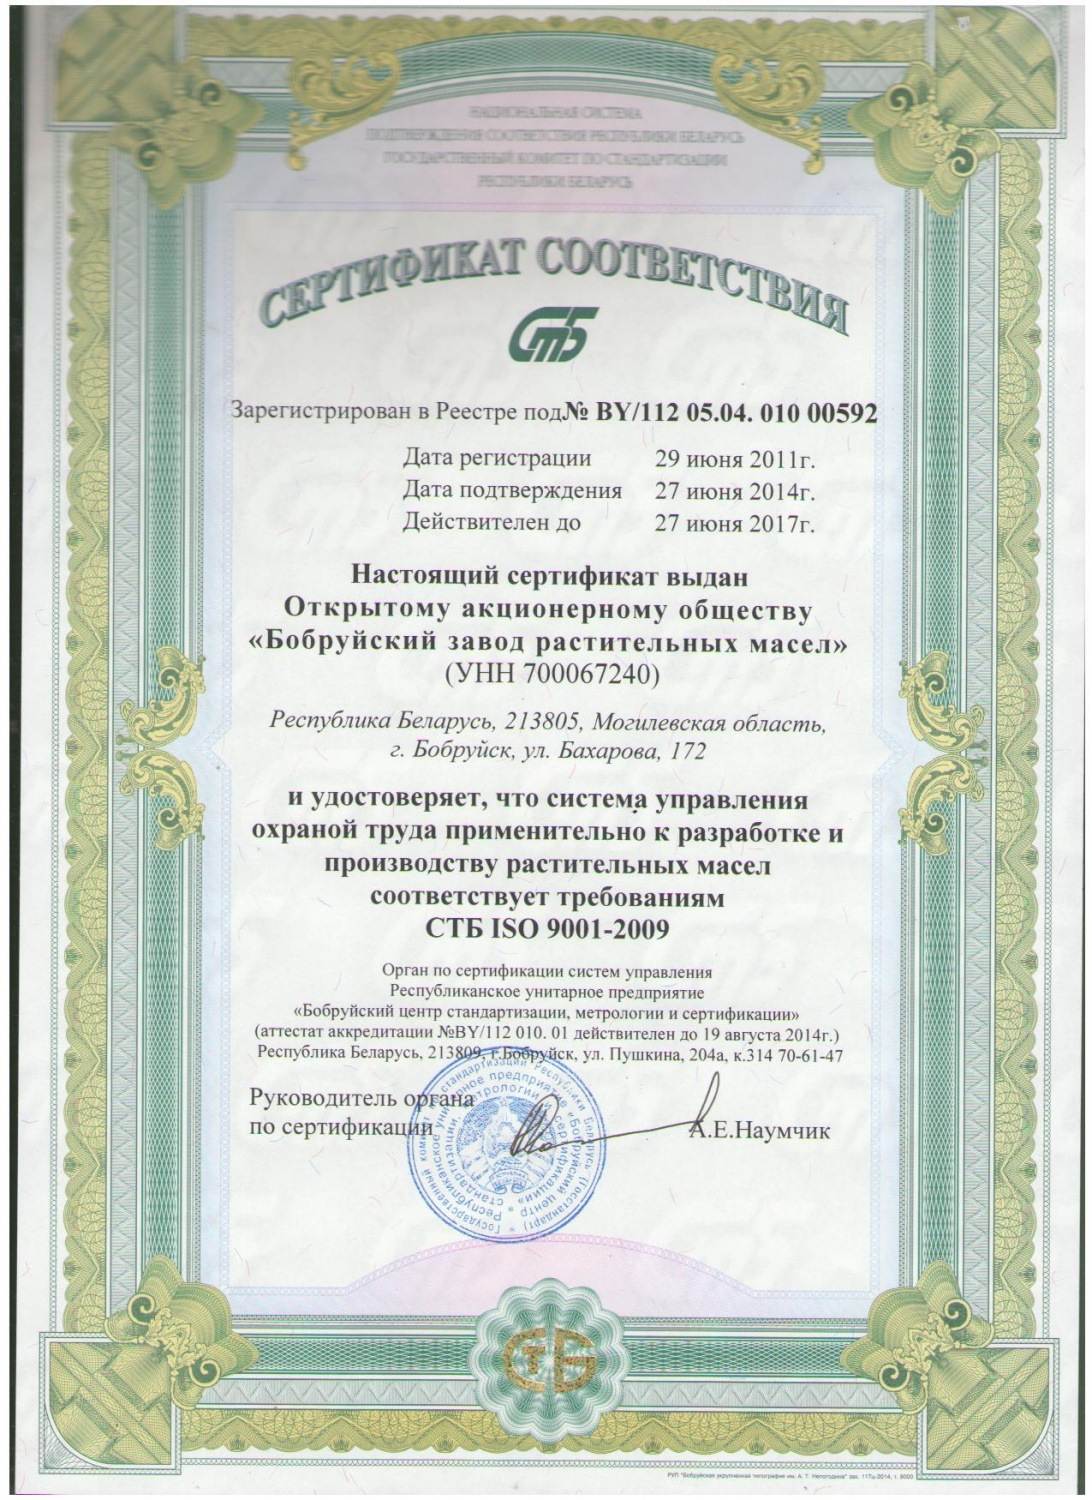 The certificate for the occupational health and safety system as applied to the development and production of vegetable oils.